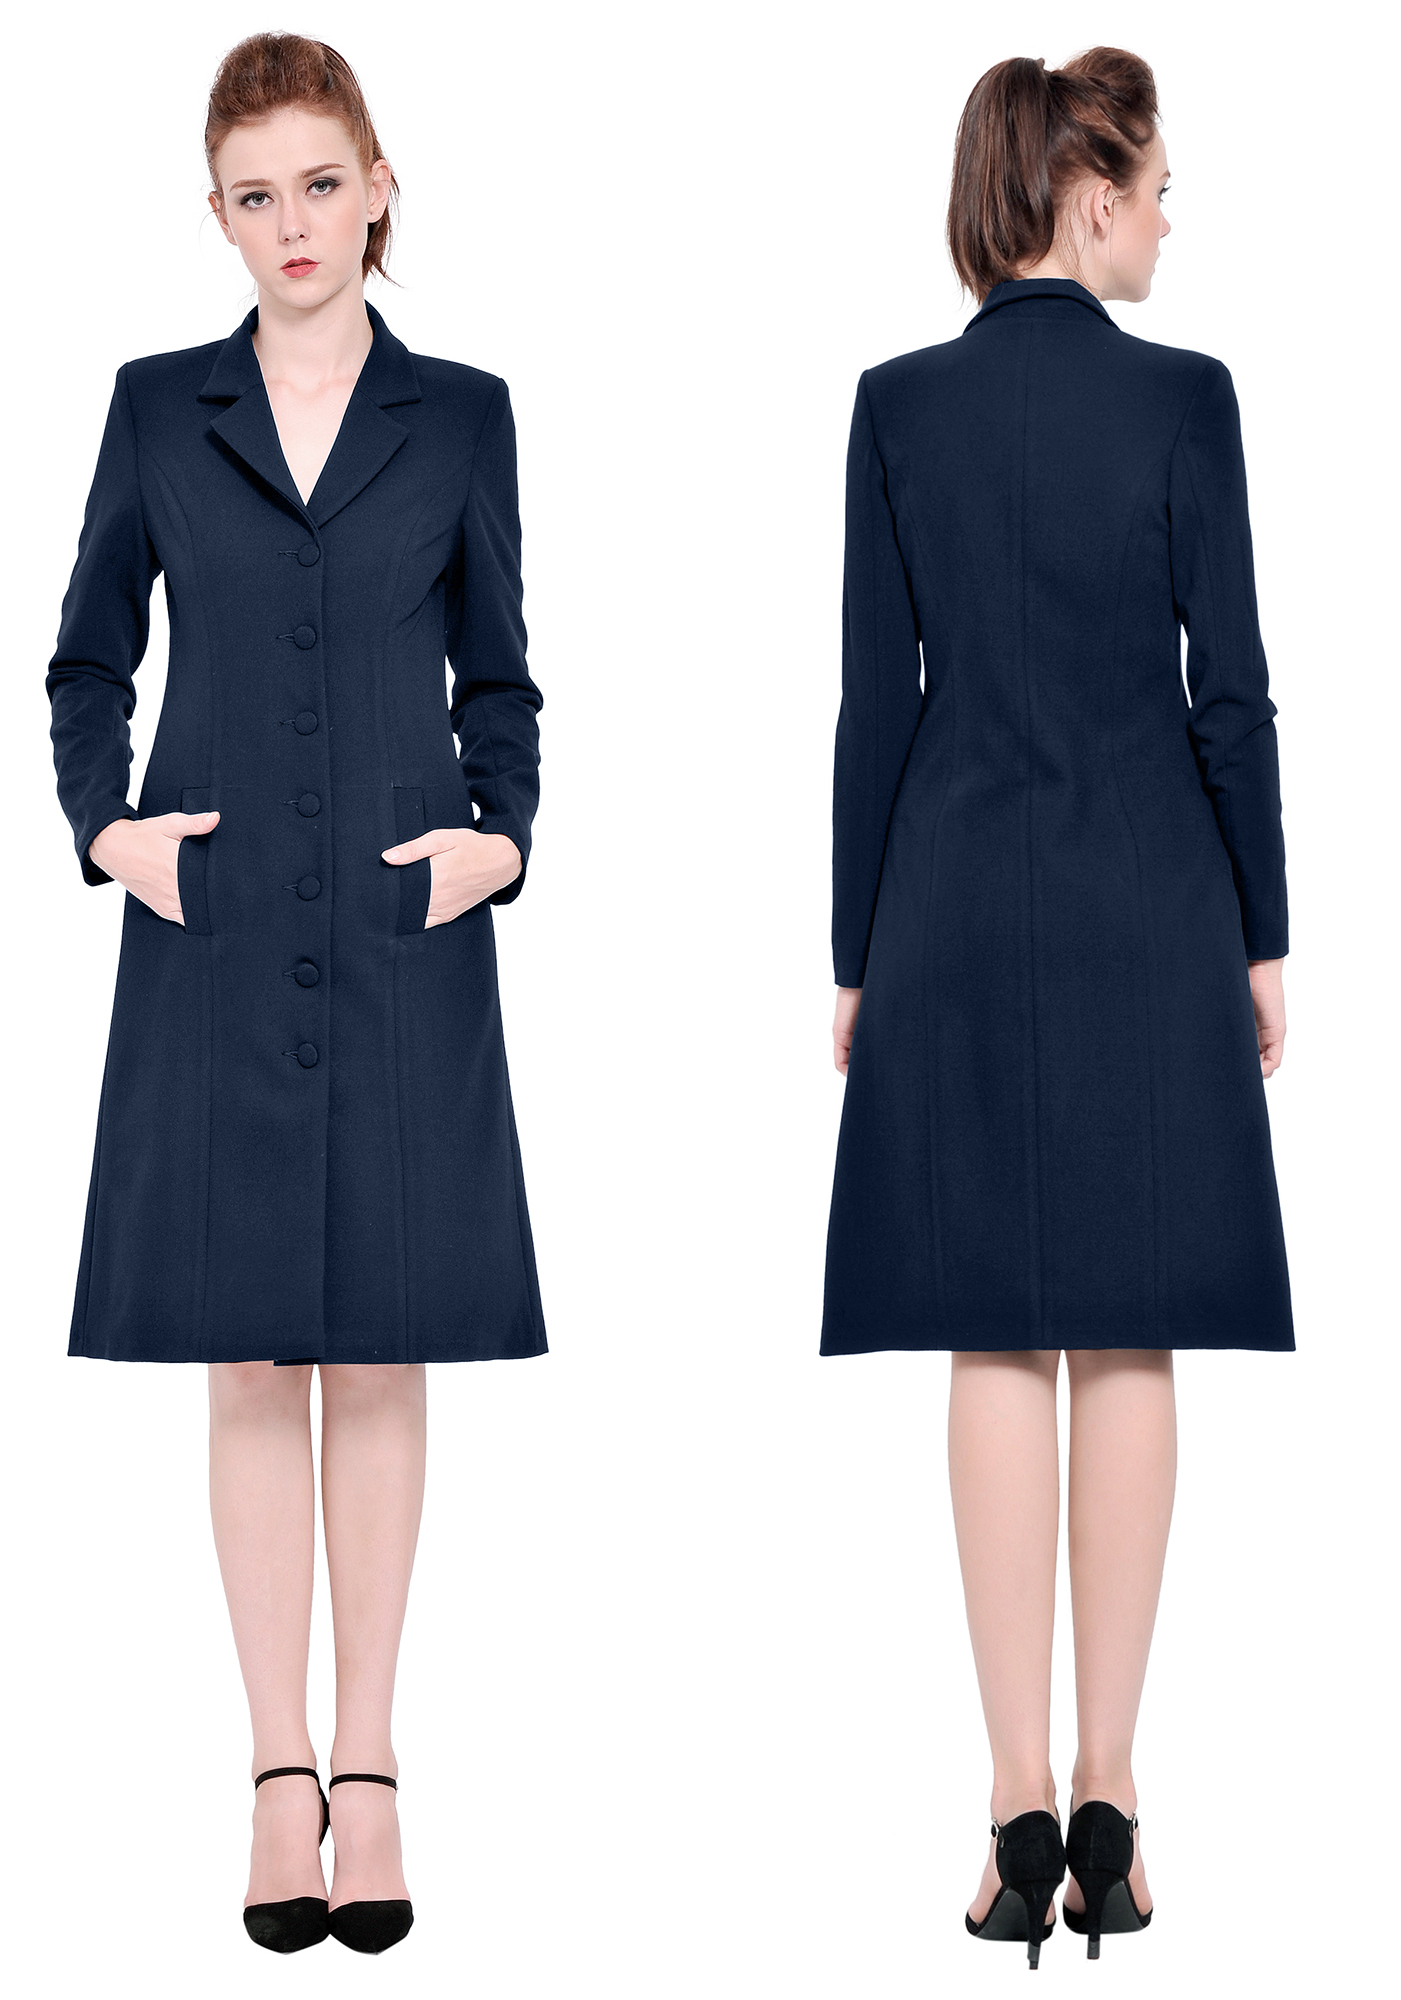 WOMENS BUSINESS OFFICE WORK LONG JACKET DRESS COATS OUTWEAR SUIT WINTER AUTUMN | eBay